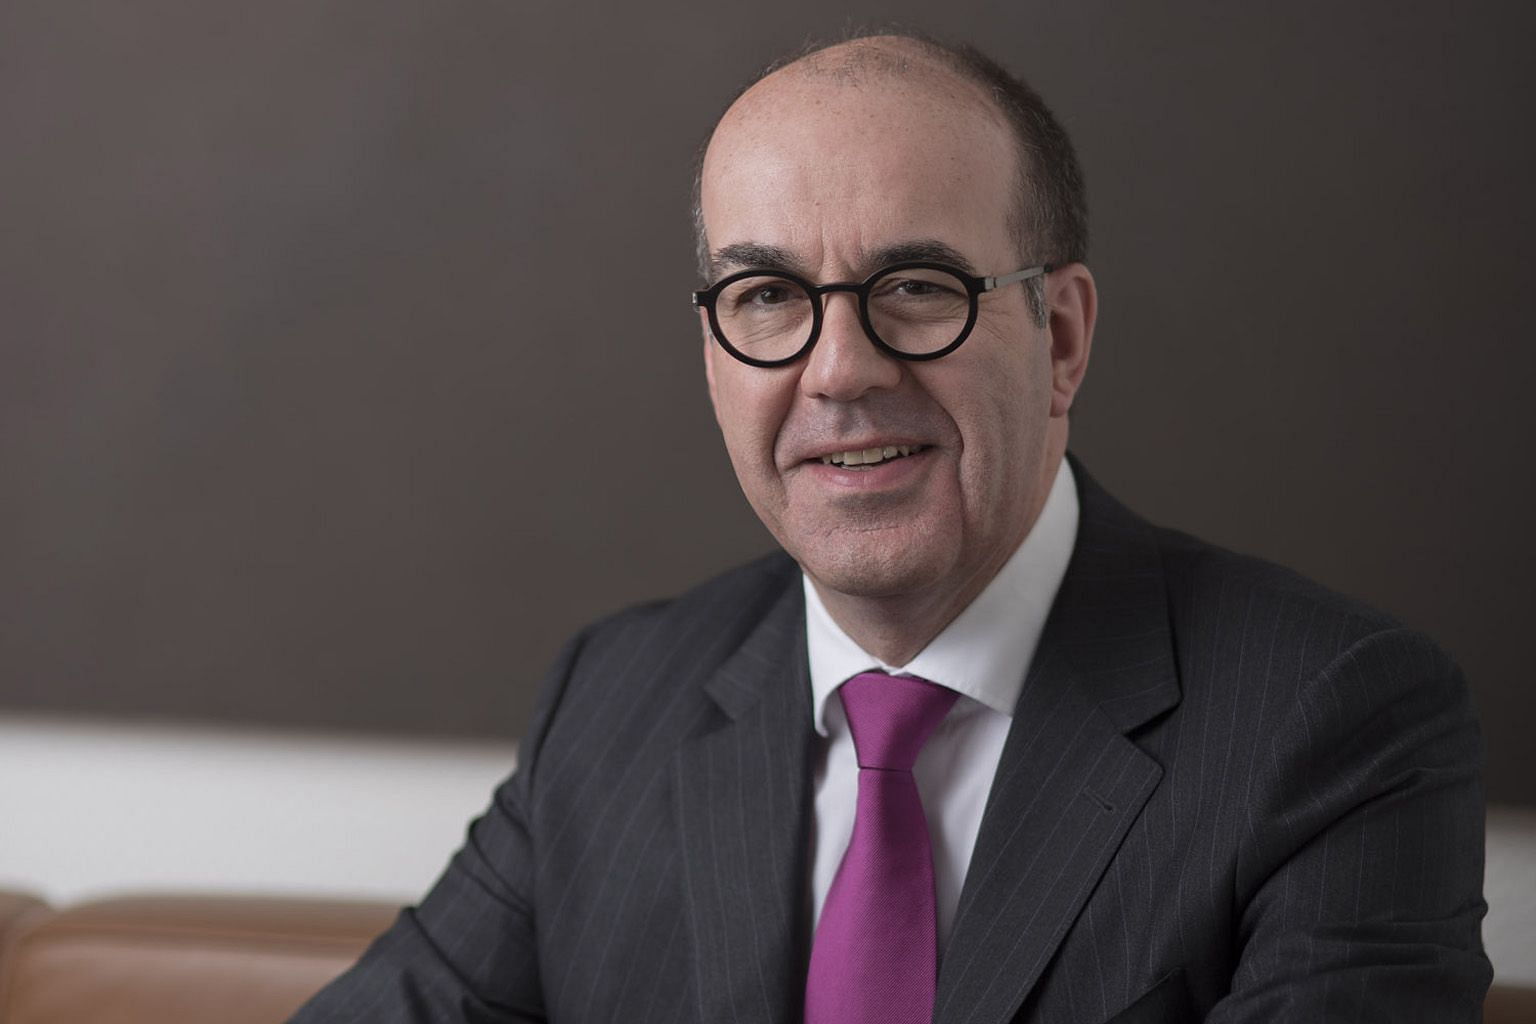 Indosuez Wealth Management chief investment officer Frederic Lamotte says China is a market that cannot be ignored, given its growth focus, which will make it a consumption-driven economy.